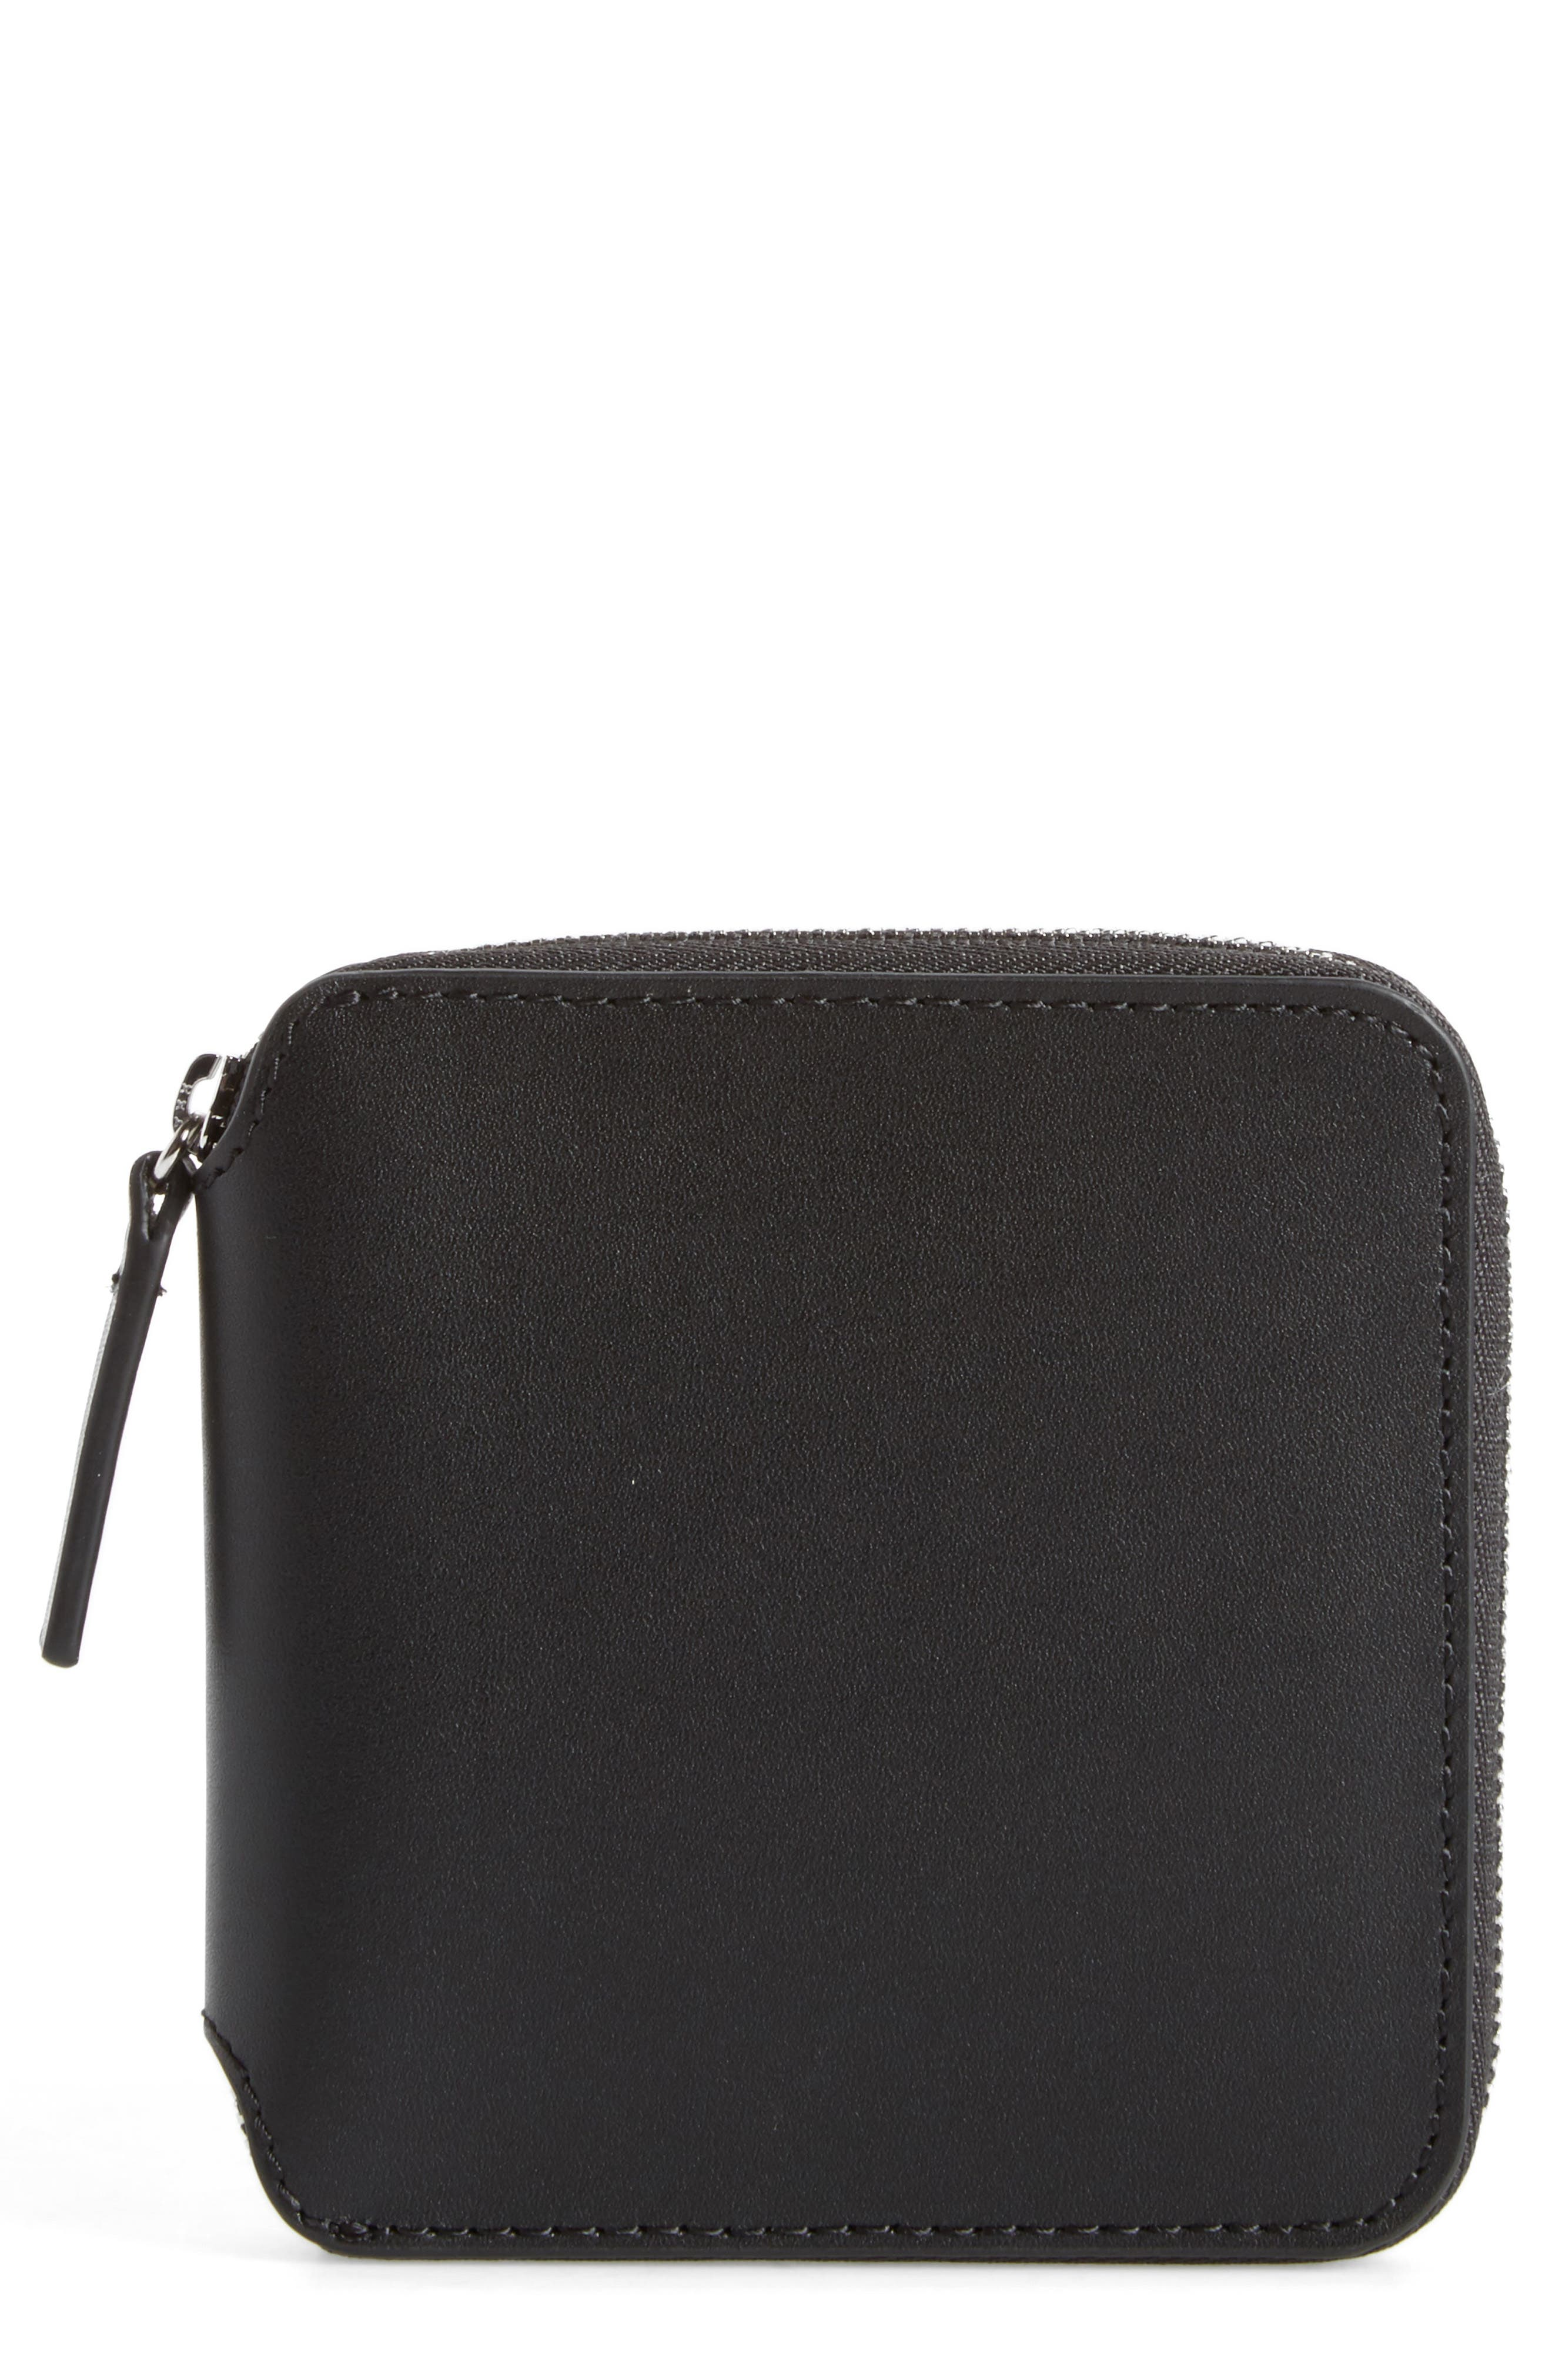 BAGGU Zip Around Square Leather Wallet, Main, color, 001